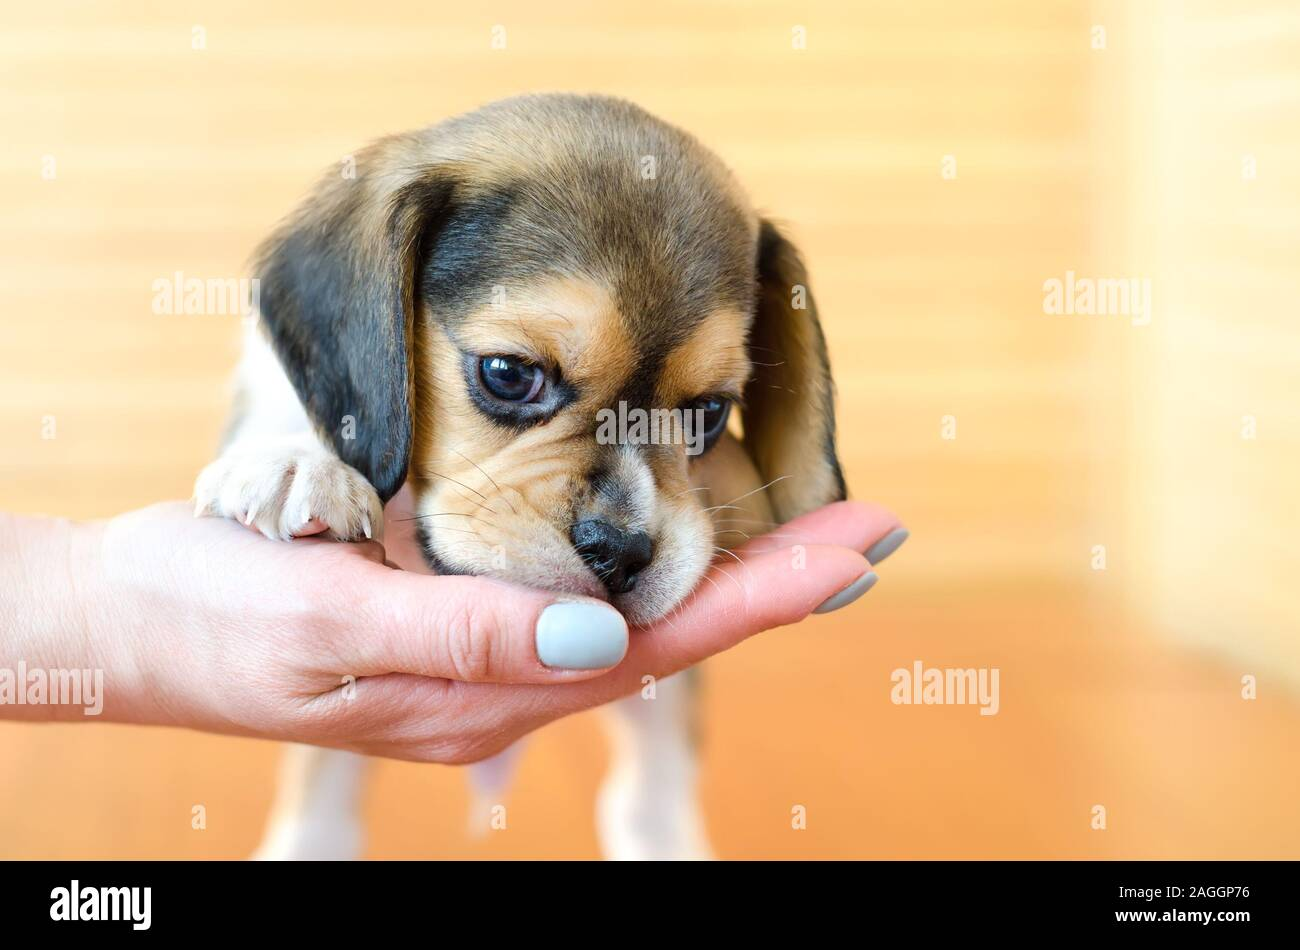 Cute Beagle Puppy On The Hand Stock Photo Alamy